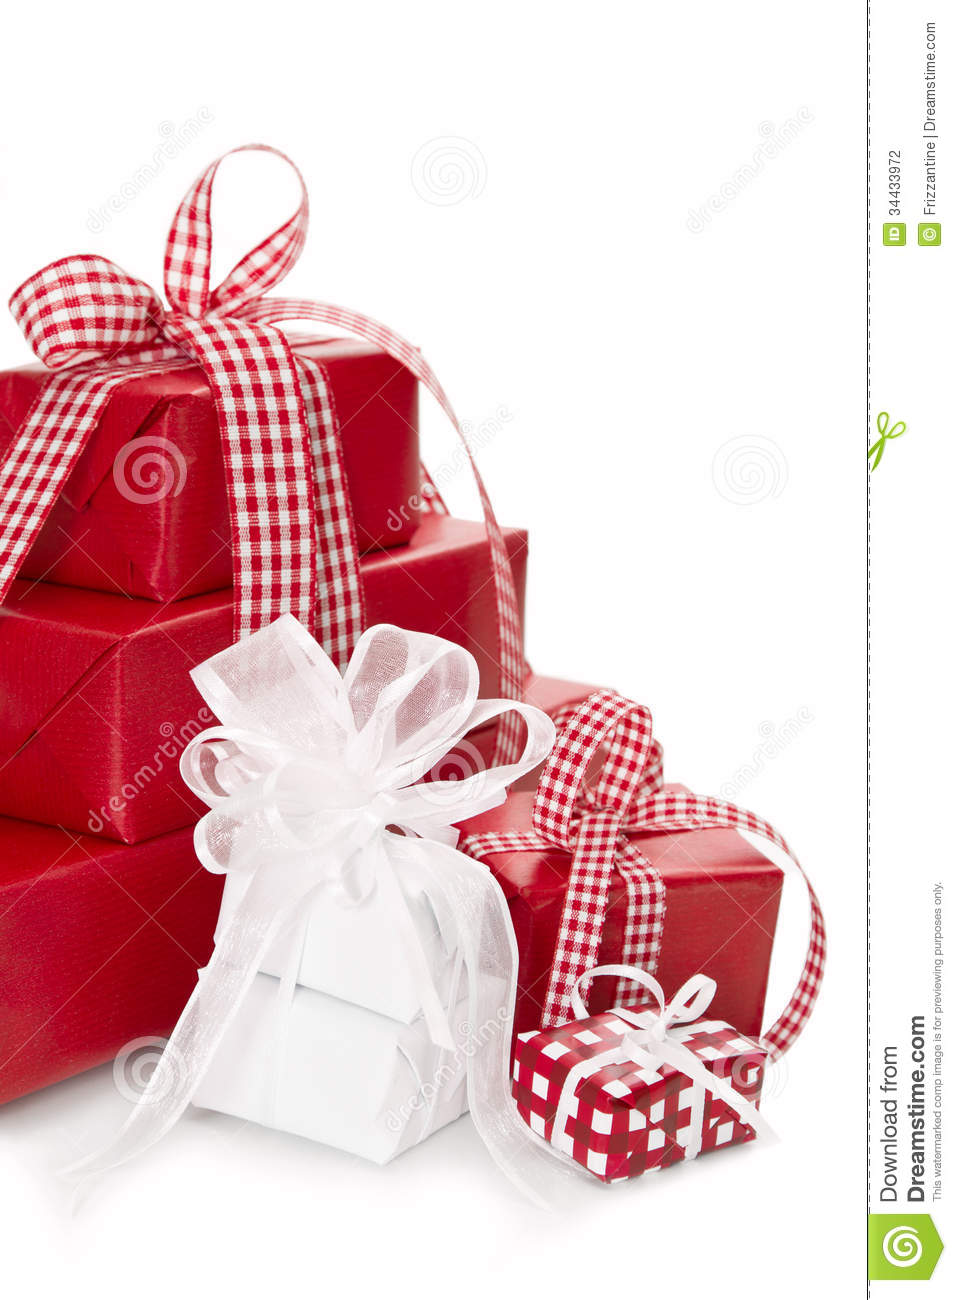 Isolated Presents Wrapped In Red And White Paper For